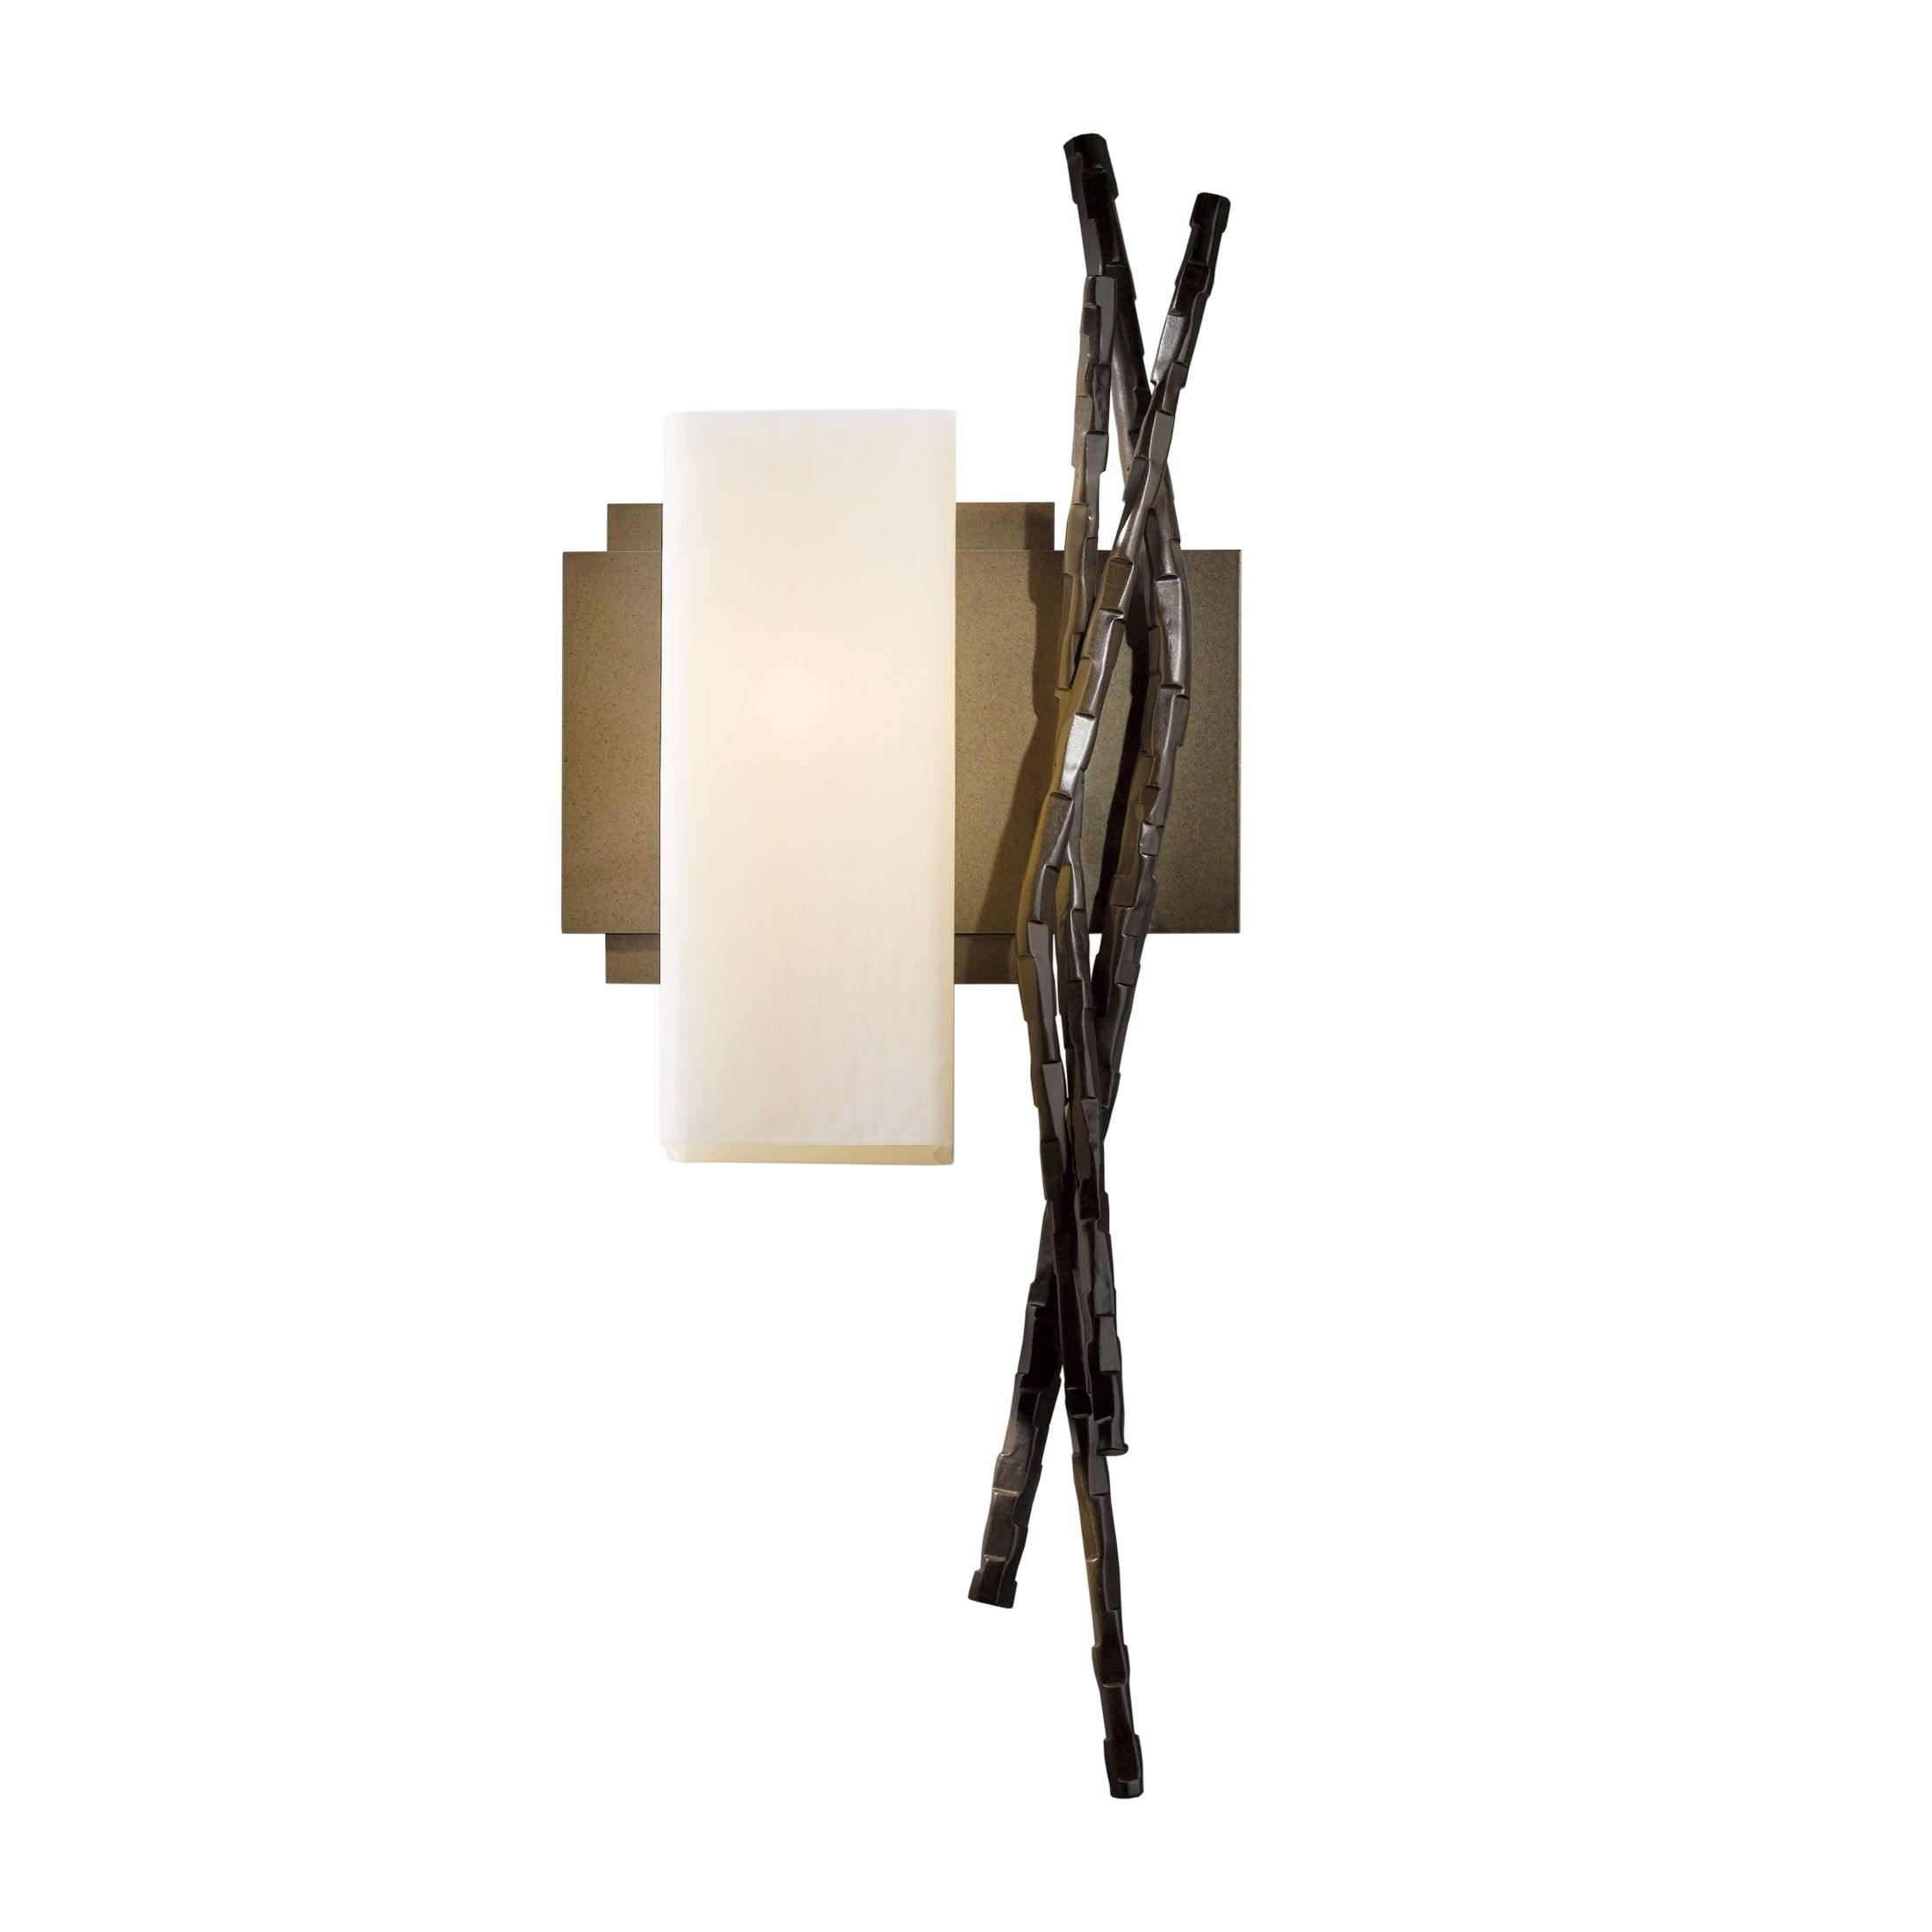 Hubbardton Forge Metra Double Floor Lamp: Brindille Table Lamp